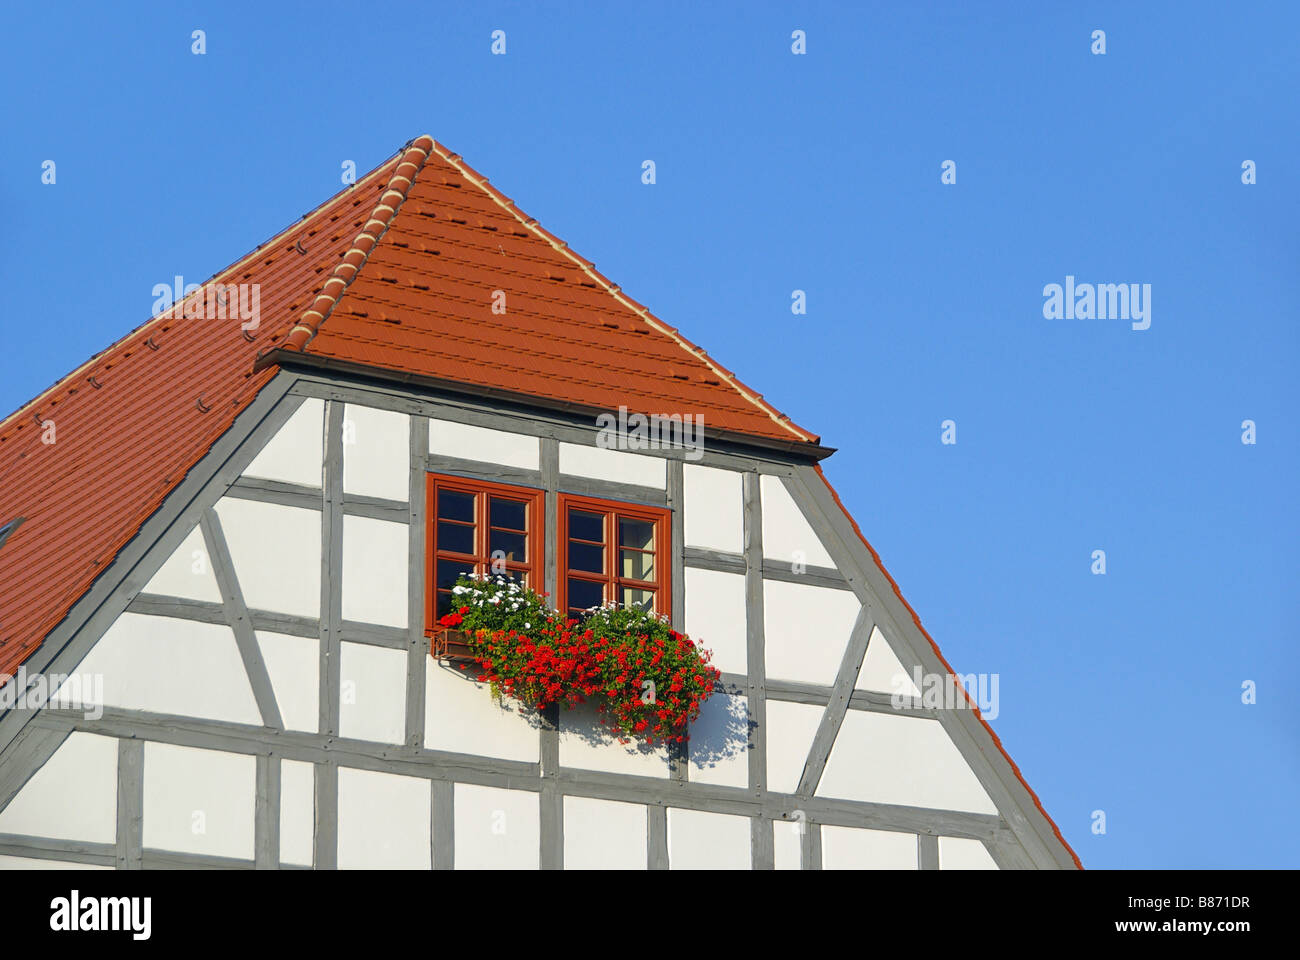 Fachwerkhaus half timber house 01 - Stock Image